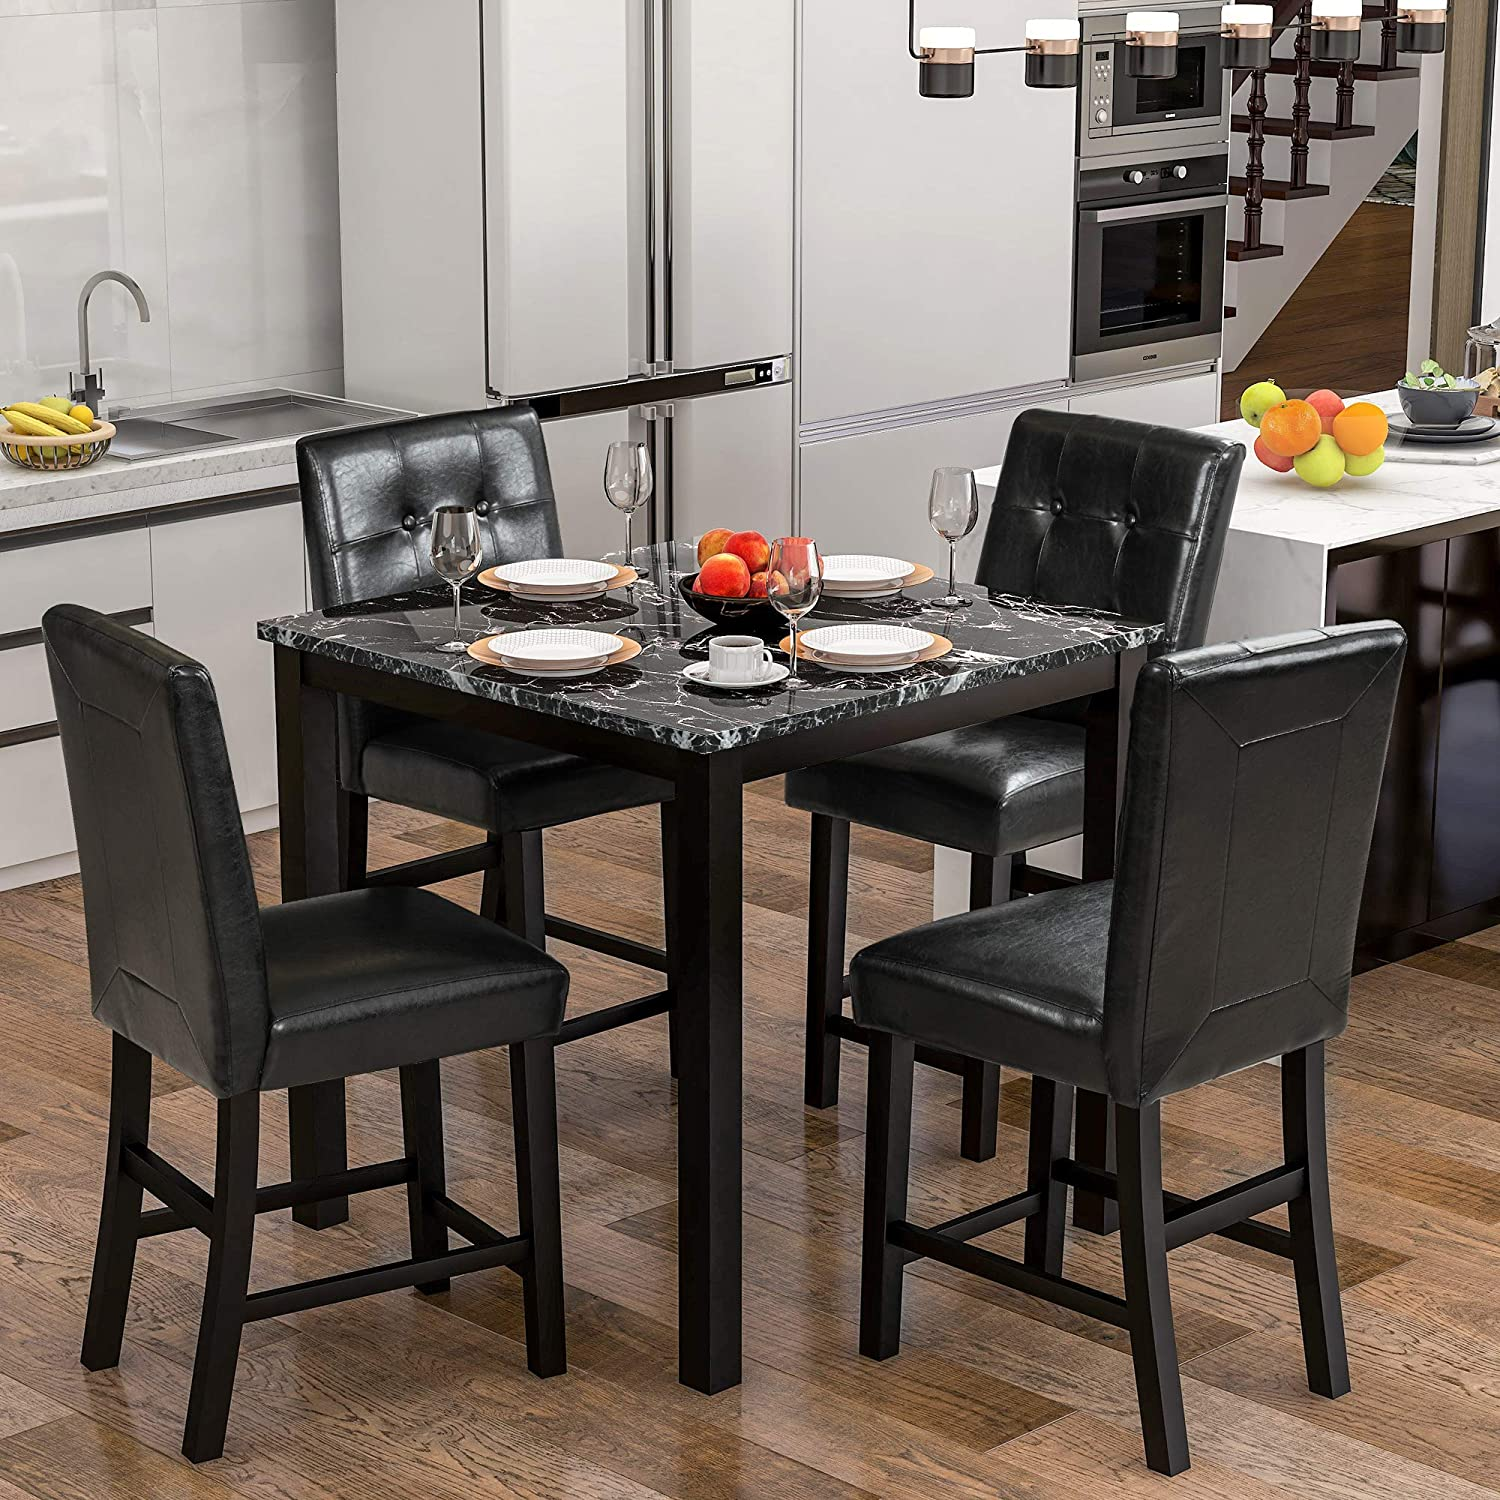 Lz Leisure Zone Dining Table Set For 4 Kitchen Table Set Faux Marble Veneer Wooden Top Counter Height Dining Room Table Set With 4 Leather Upholstered Chairs Black Table